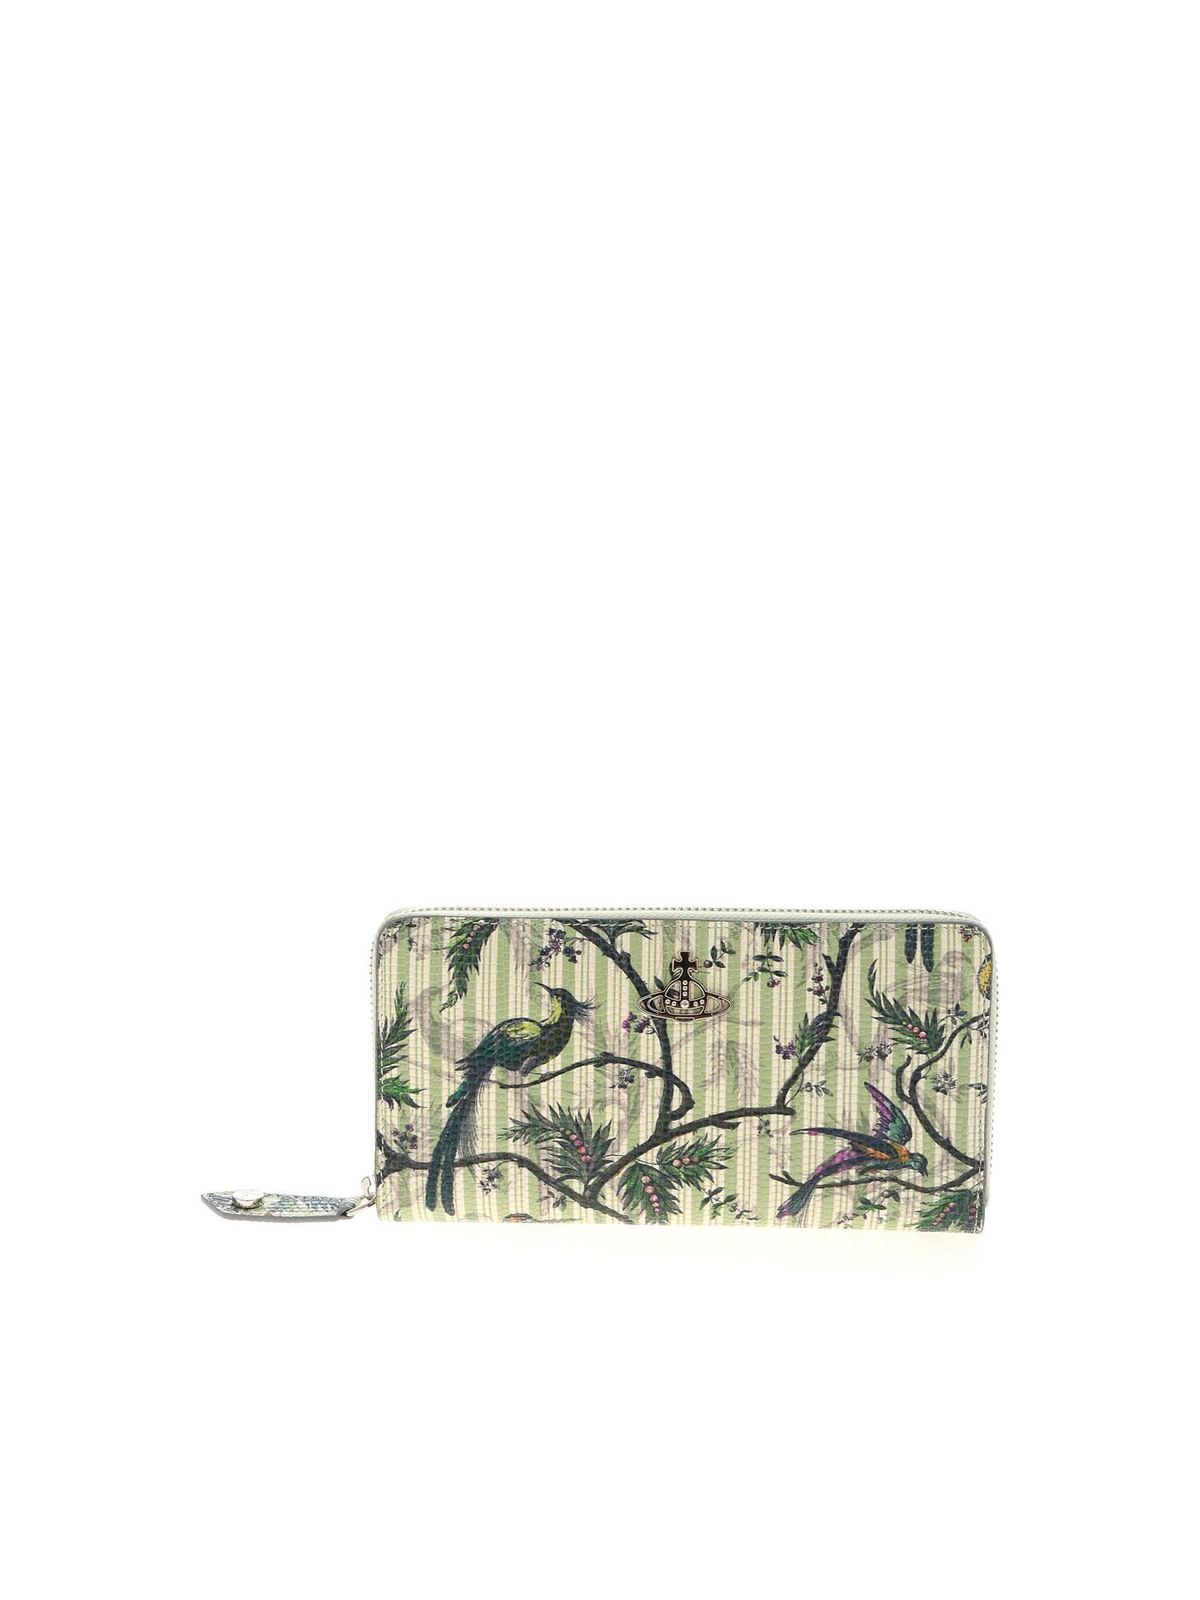 Vivienne Westwood SLOANE WALLET IN GREEN